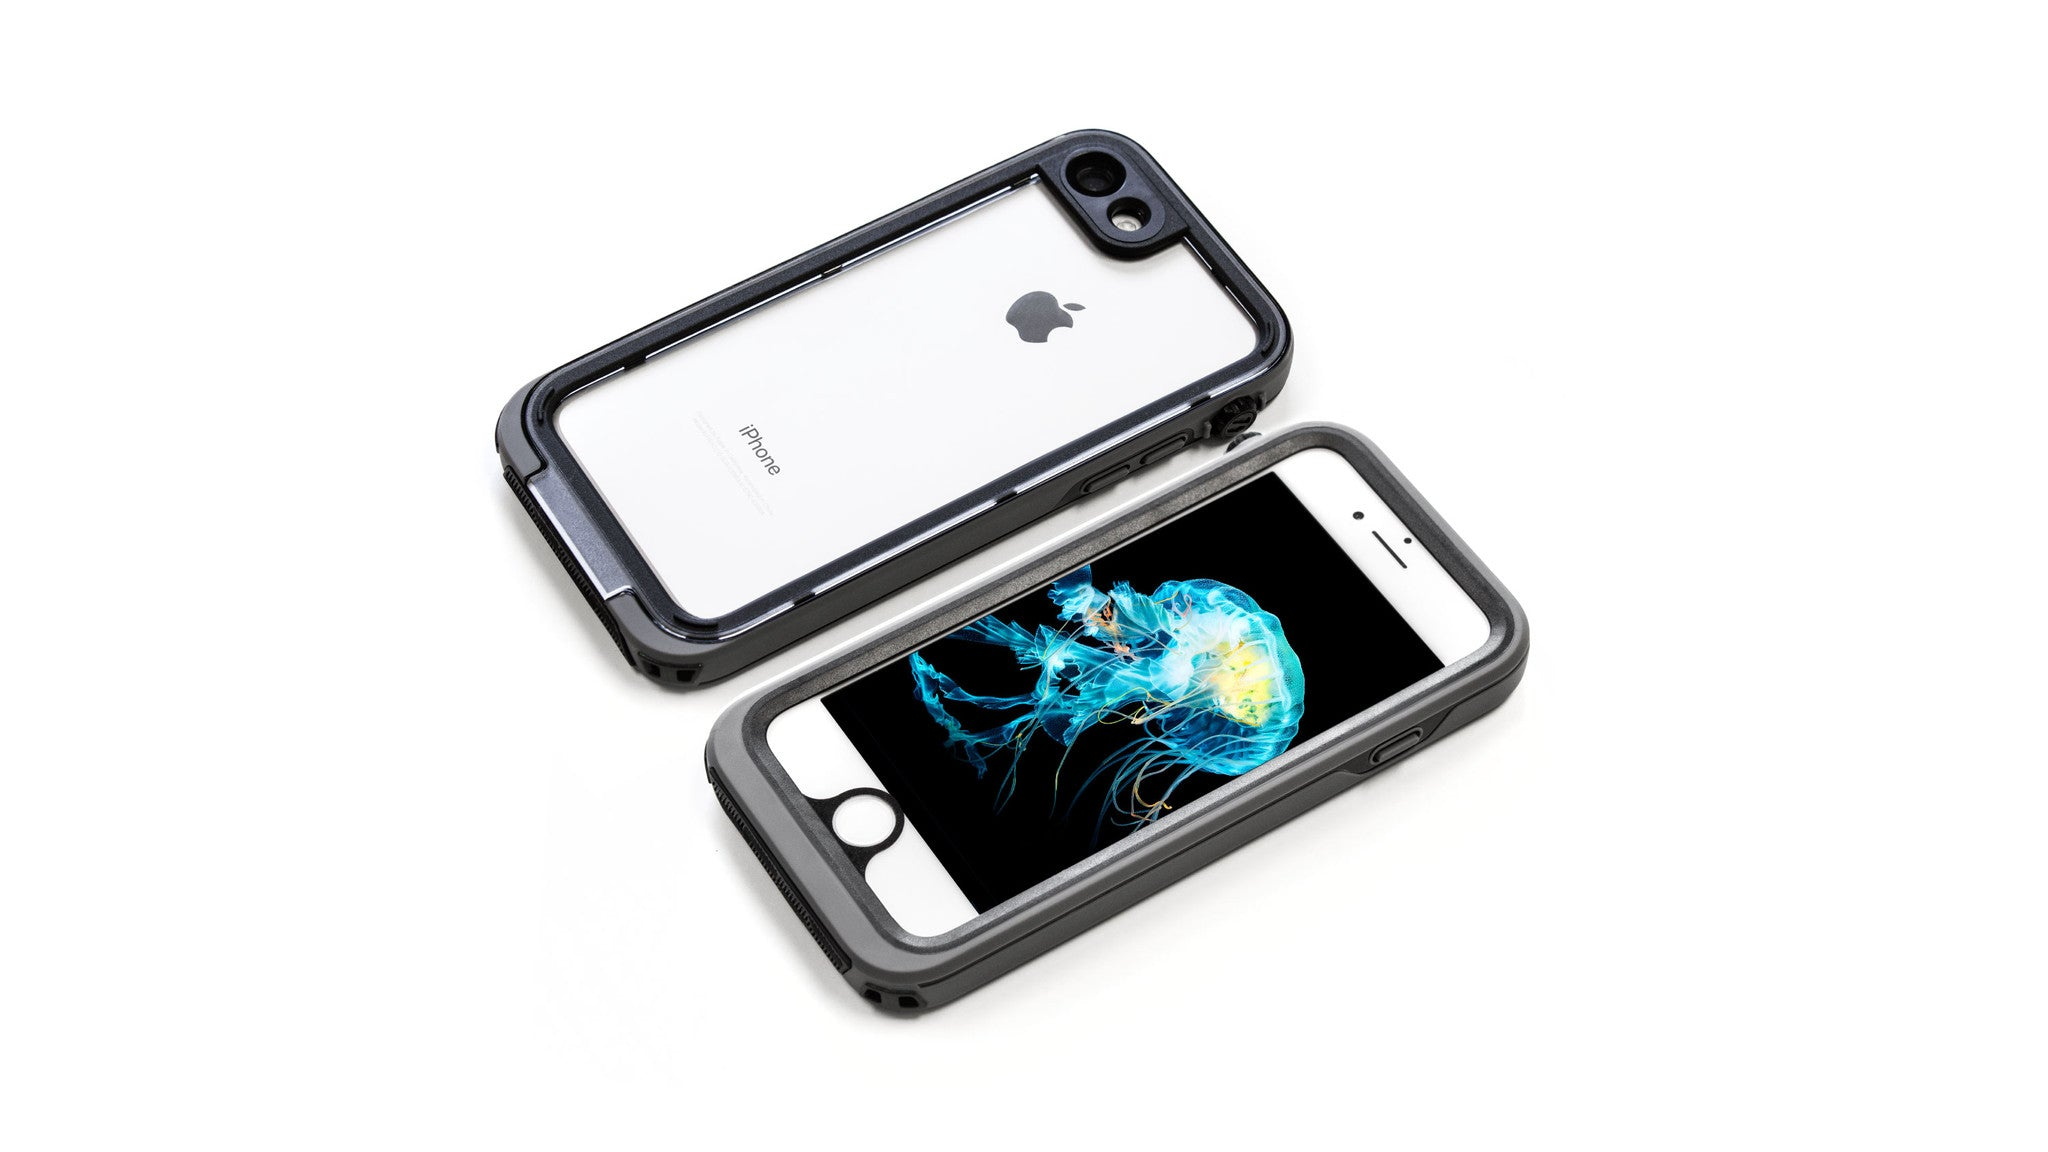 PhoneSuit WetSuit Case for iPhone 7 & iPhone 6 - IP68